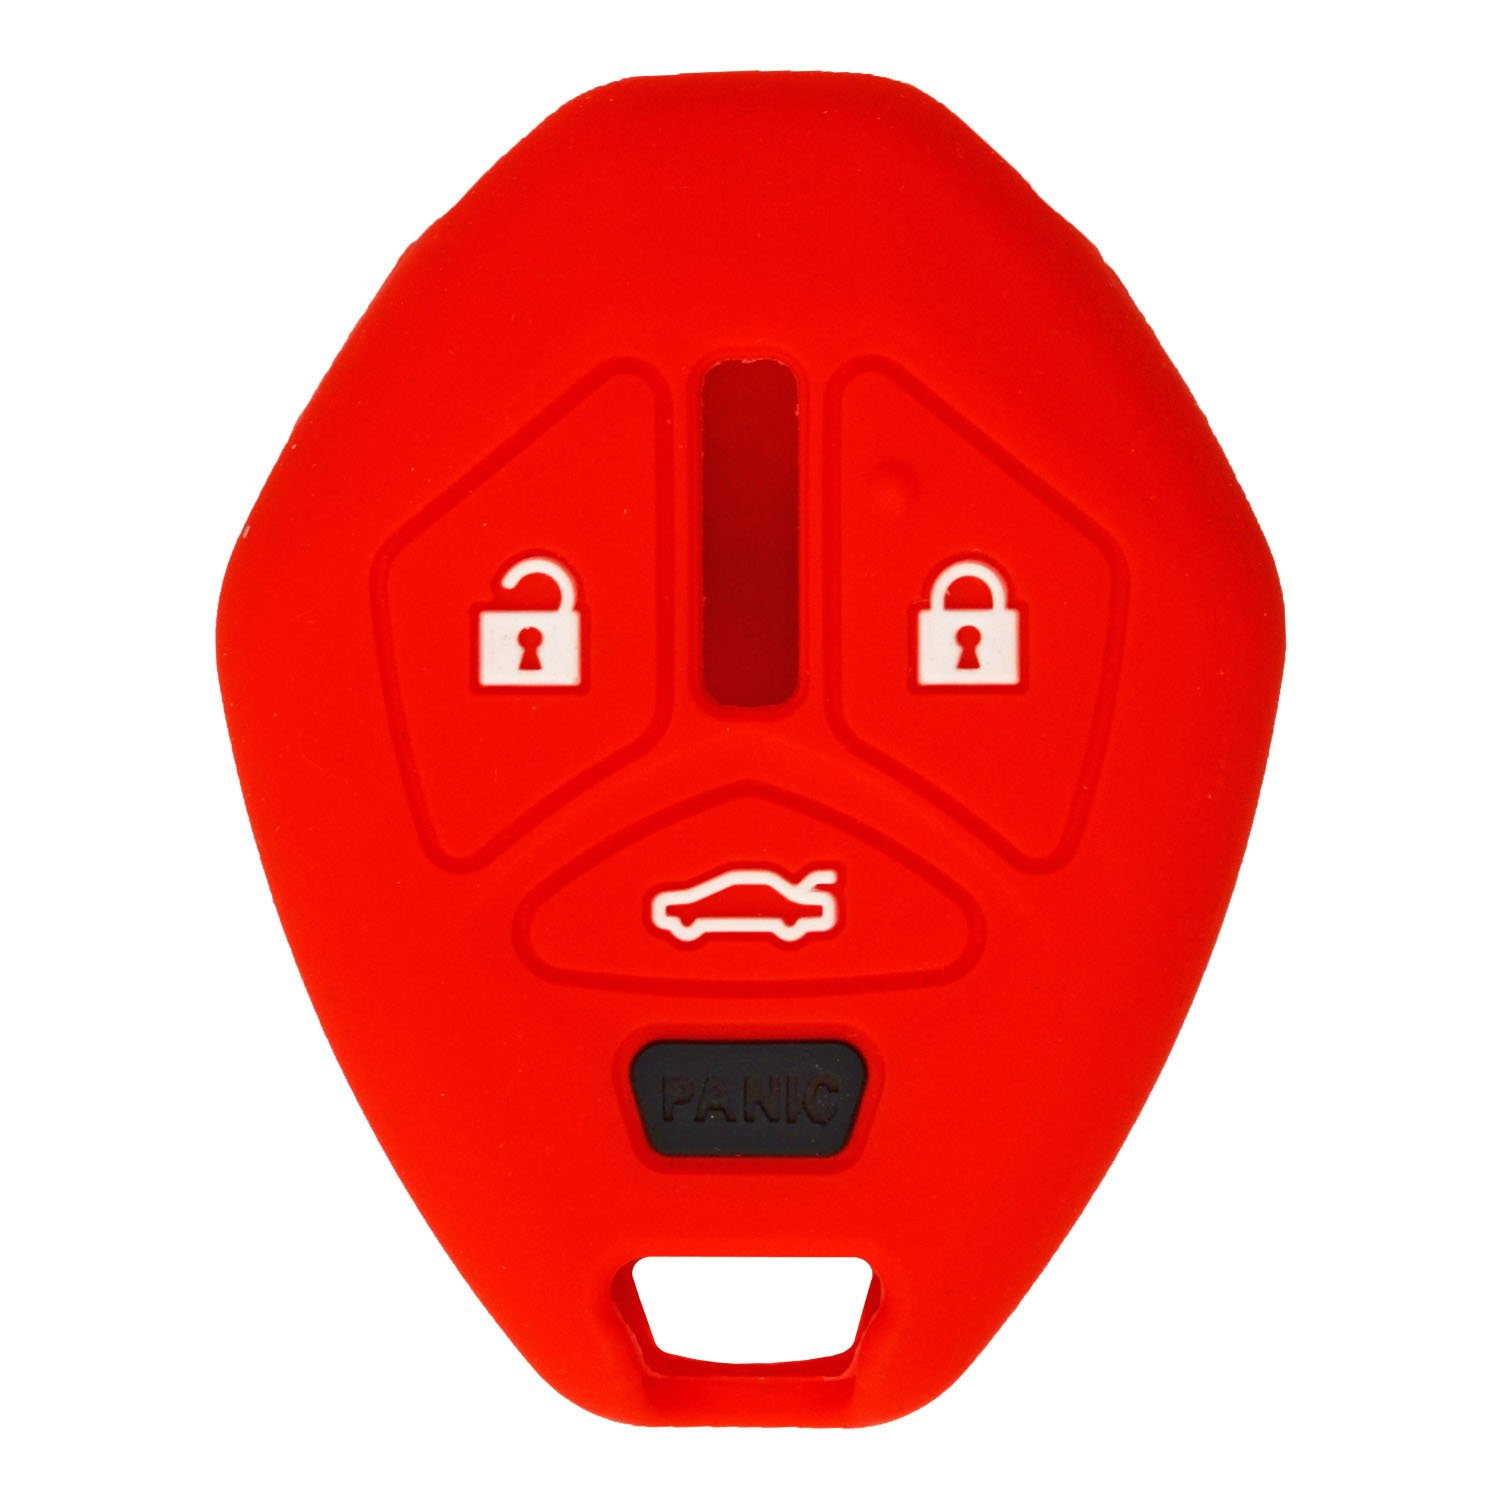 OUCG8D-620M-A OUCG8D-625M-A with Keytag Return qualitykeylessplus Rubber Silicone Protective Cover for 4 Button Mitsubishi Remote Head Keys with FCC ID Red